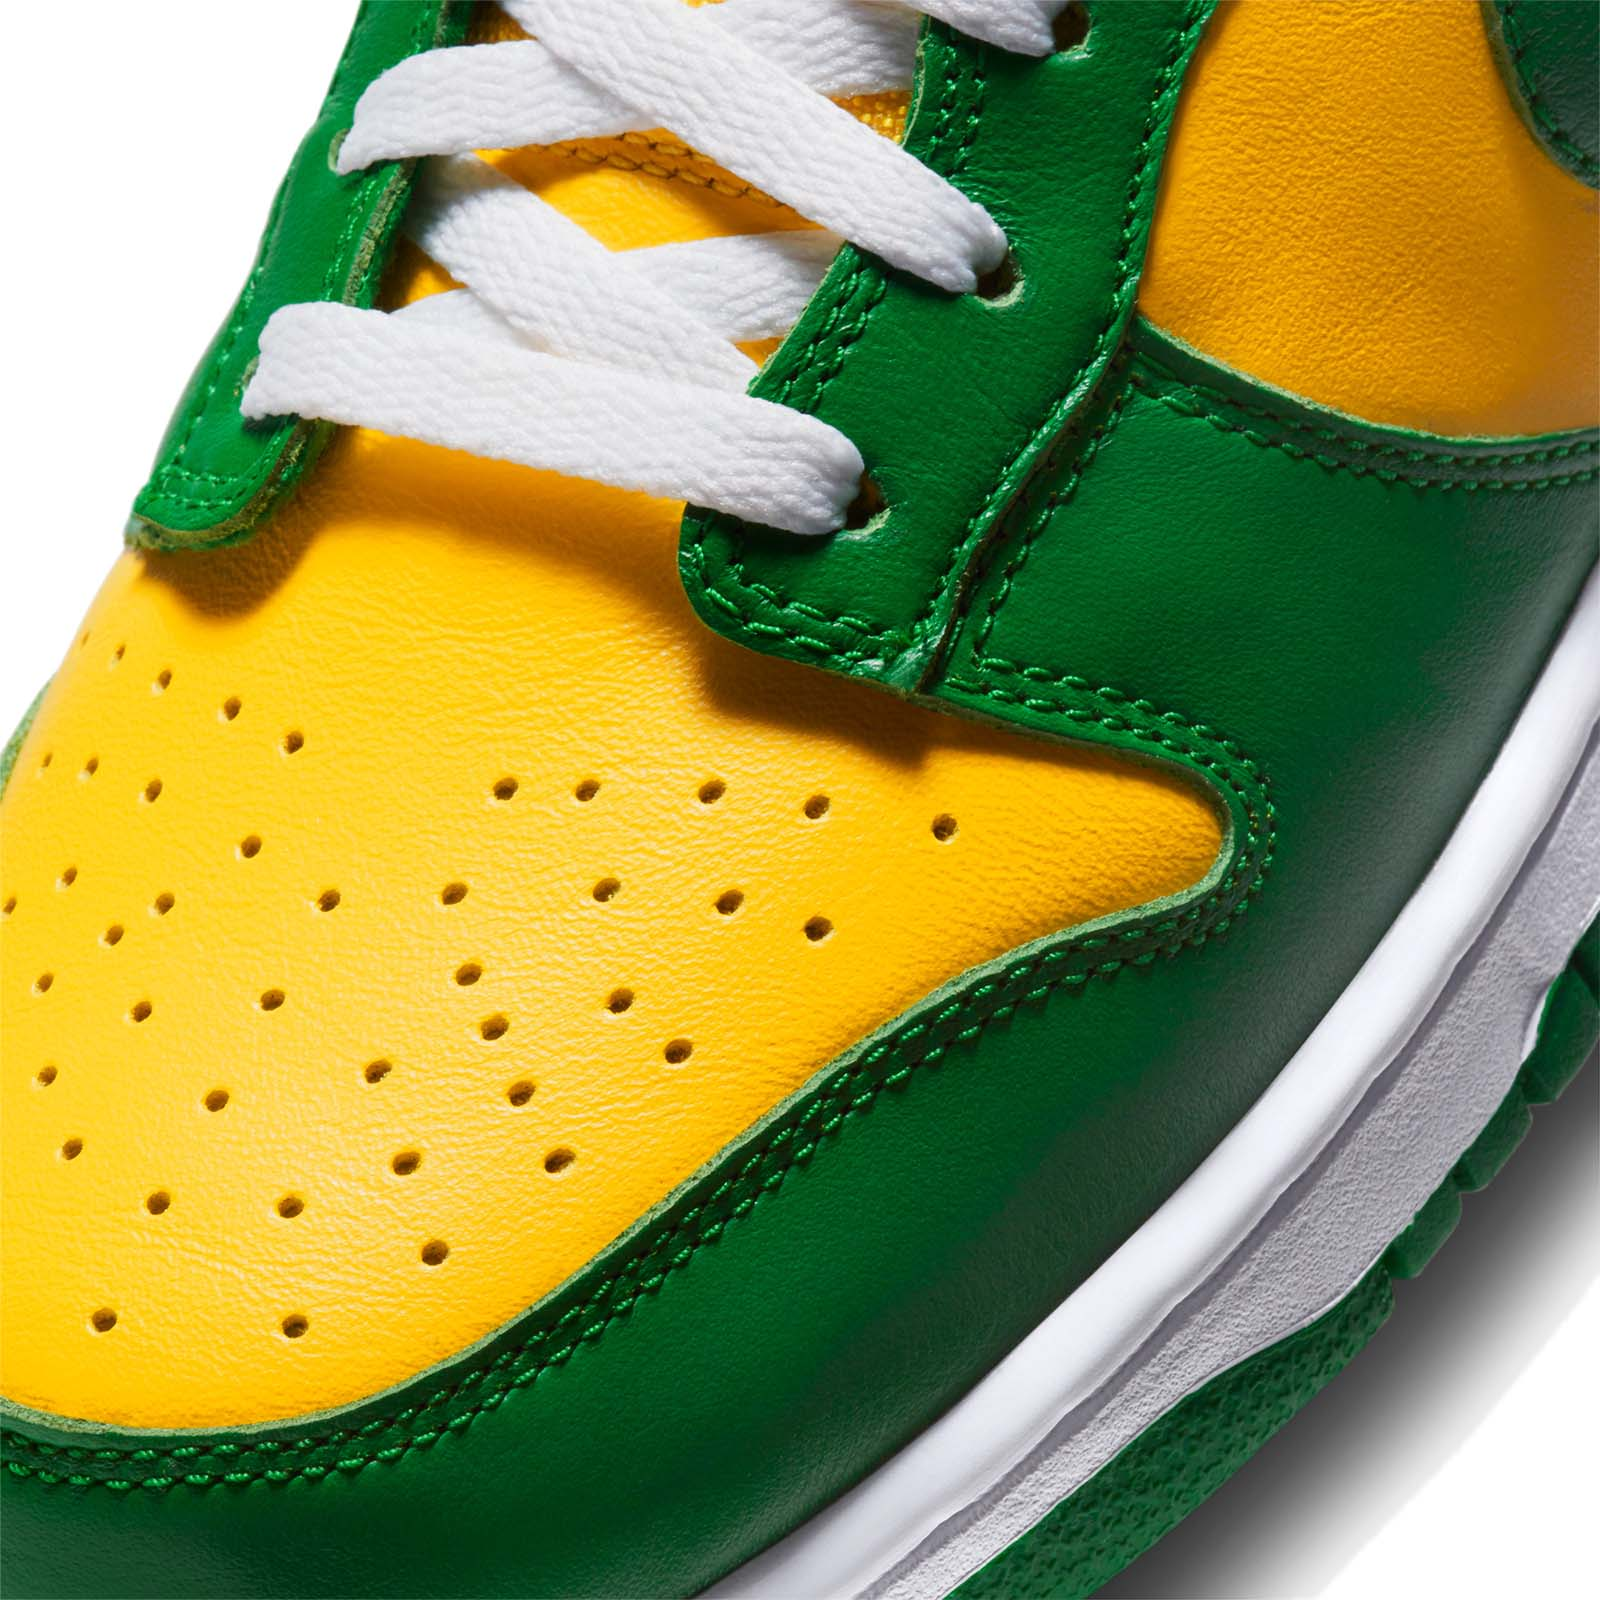 NIKE DUNK LOW SP BRAZIL VARSITY MAIZE / PINE GREEN-WHITE CU1727-700 ナイキ ダンク ロー SP ブラジル イエロー/グリーン